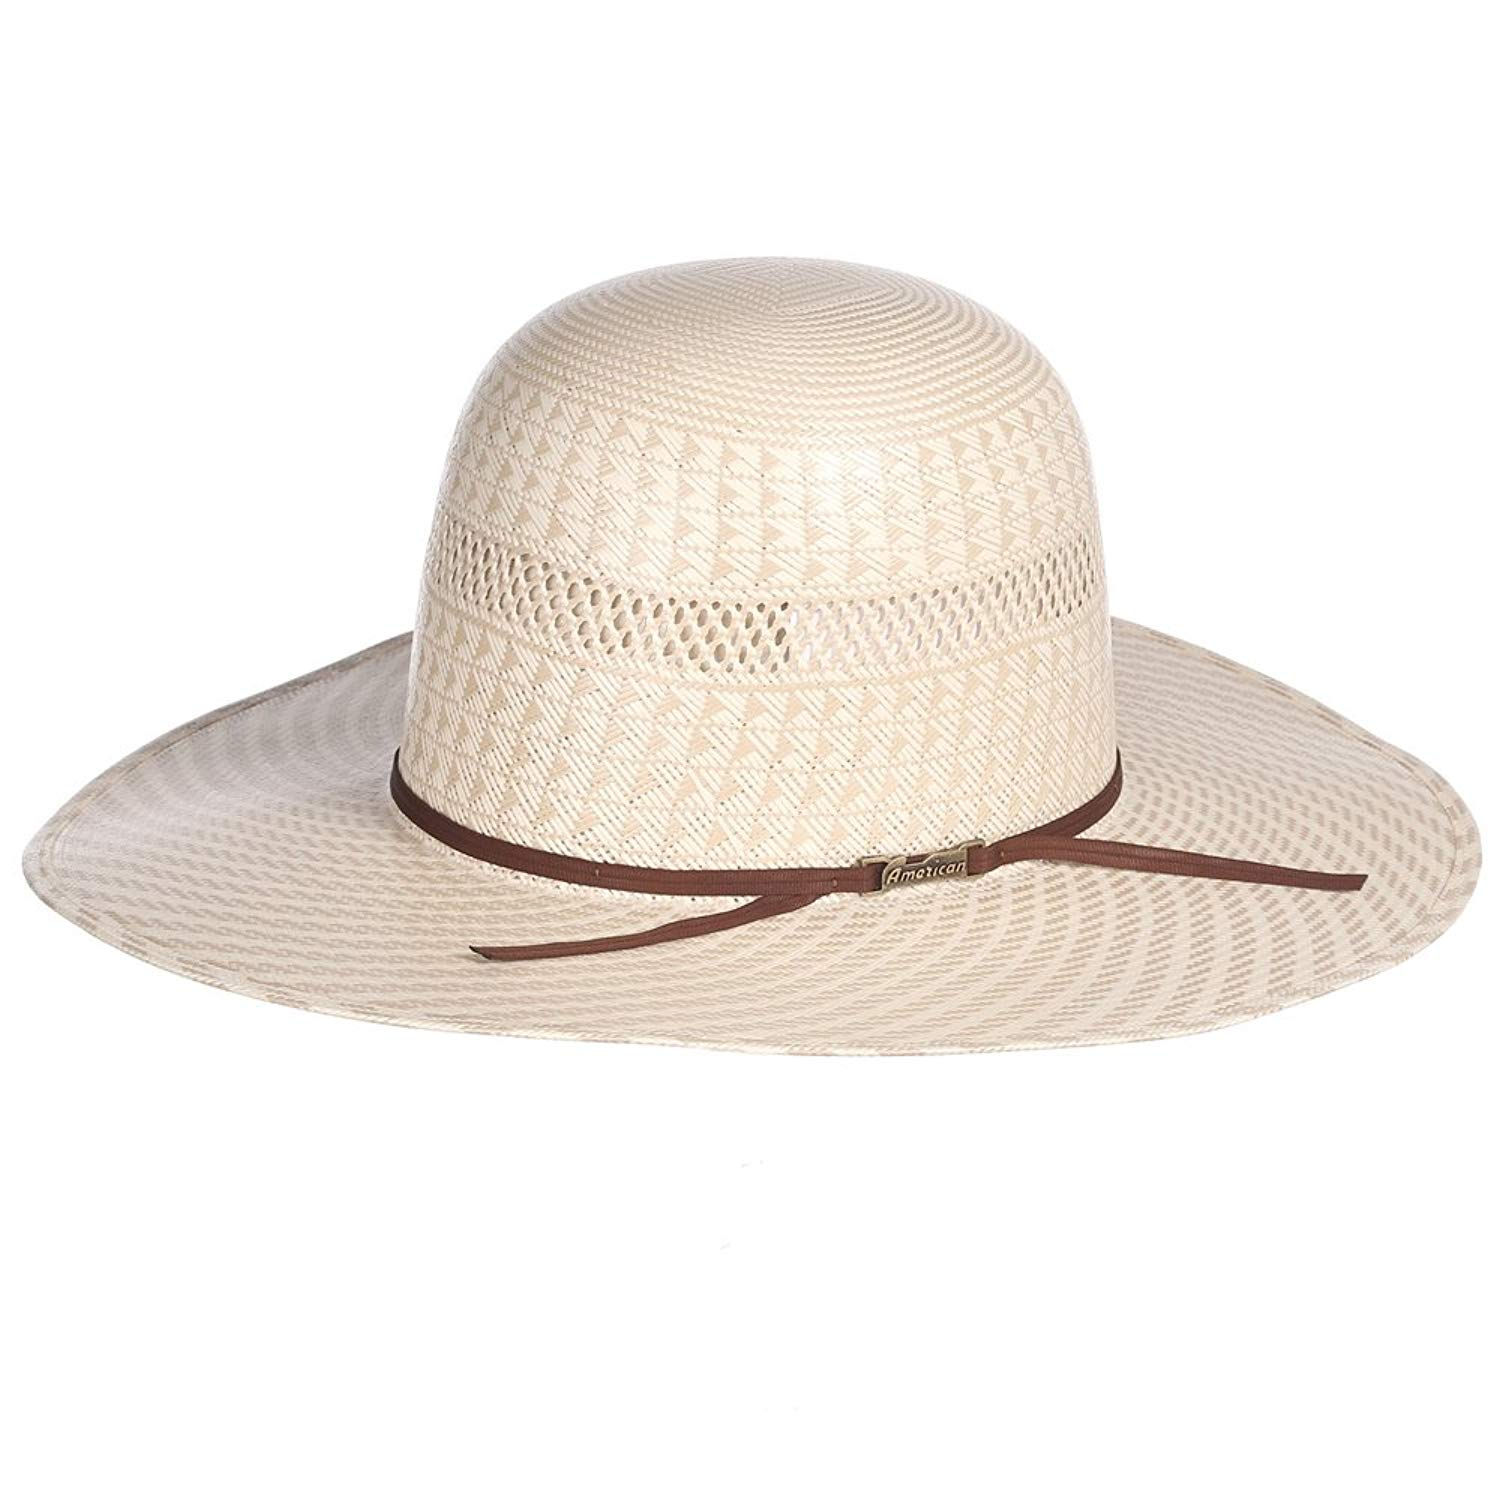 624f7c40ccb4f Get Quotations · NRS American Hat Company Mens Ivory Tan Open Crown Vent  Round Oval Two Cord Chocolate